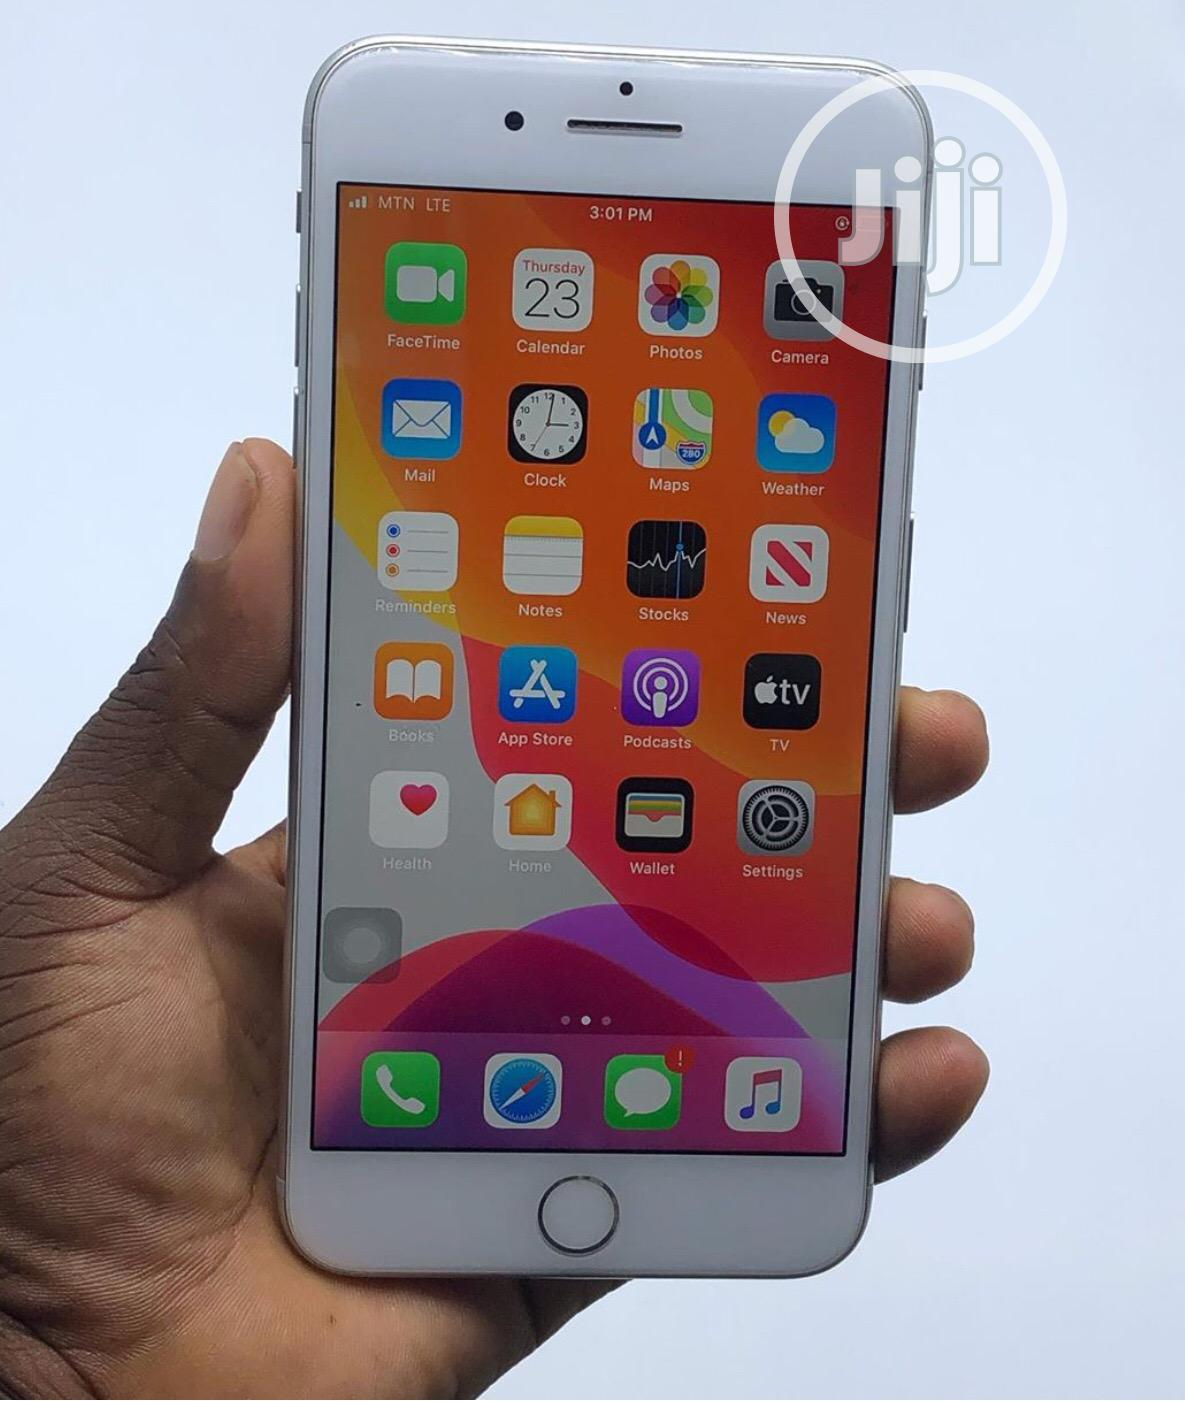 Apple iPhone 6 Plus 16 GB White | Mobile Phones for sale in Warri, Delta State, Nigeria